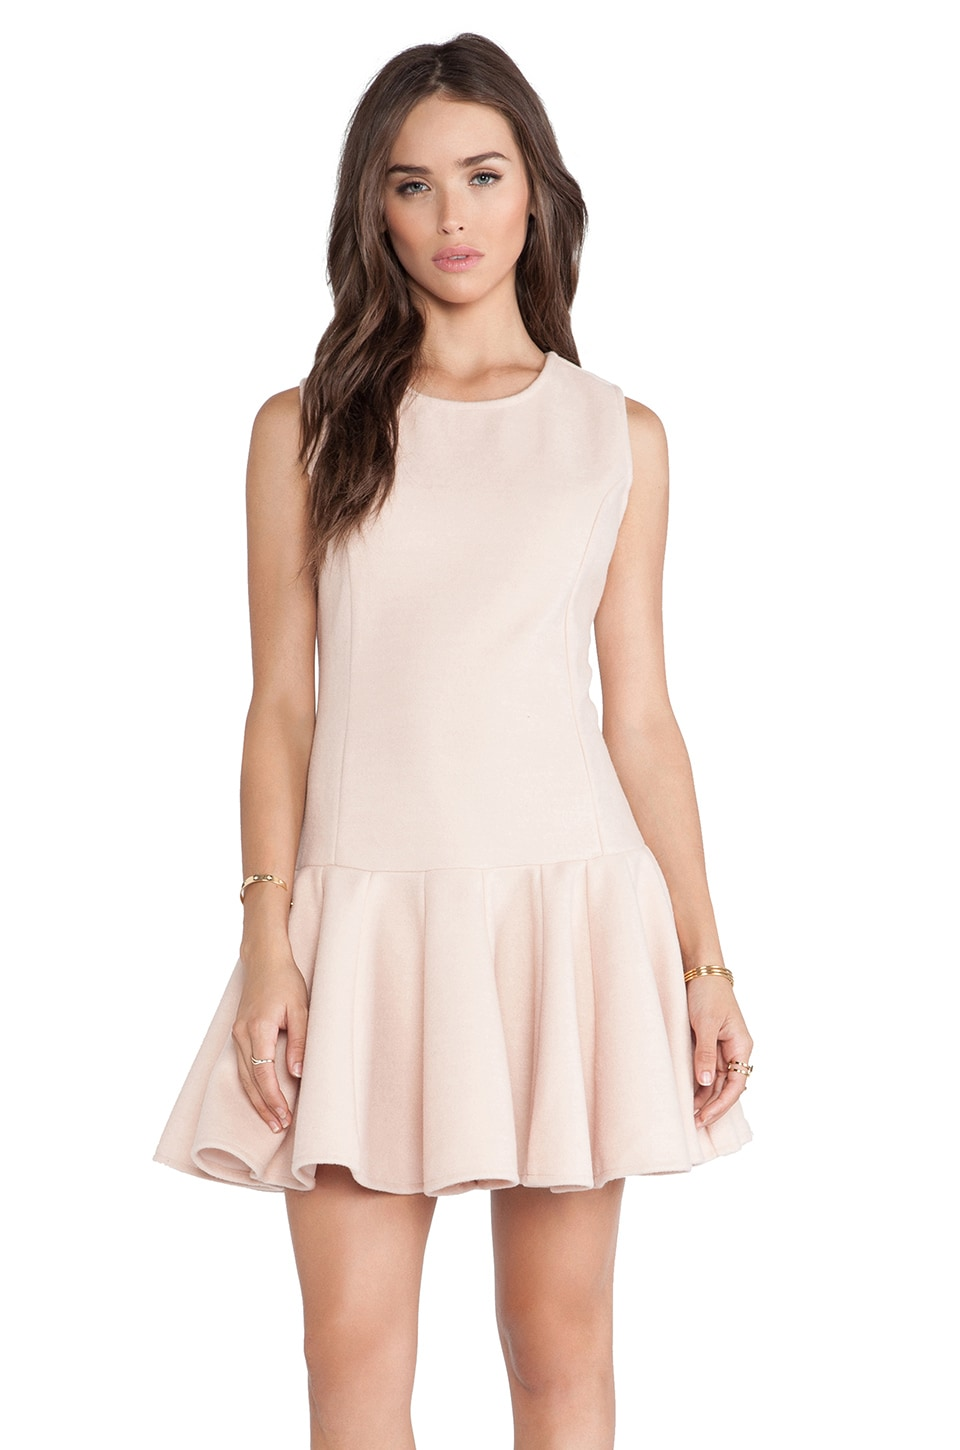 J.O.A. Neoprene Dress in Blush Pink